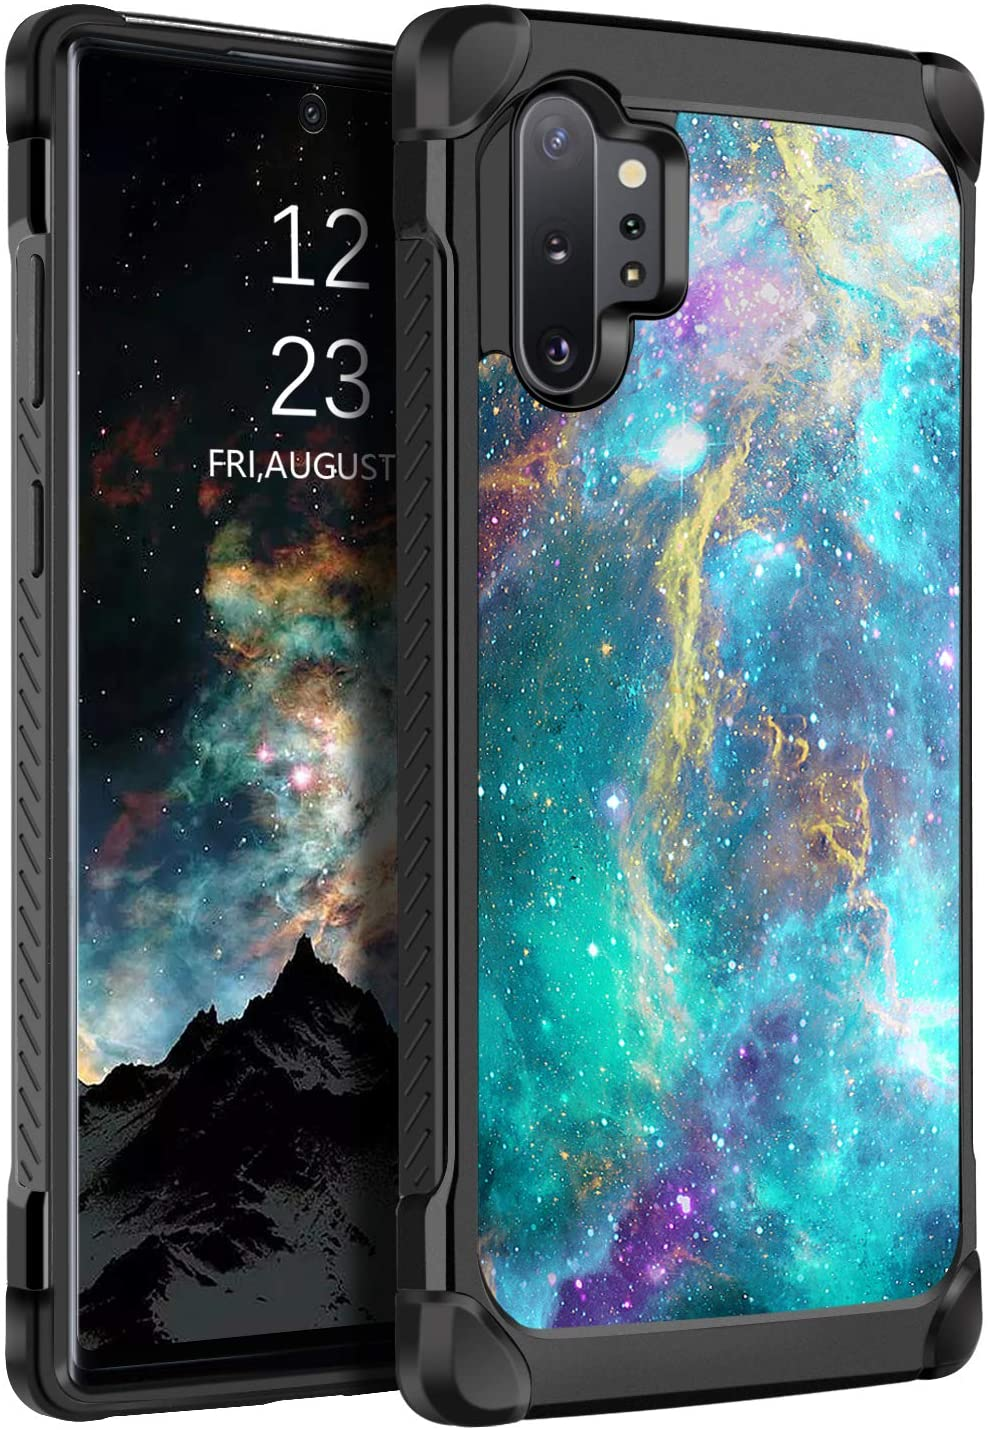 BENTOBEN Samsung Galaxy Note 10 Plus Case, Glow in The Dark Dual Layer Shockproof Hybrid Hard PC Soft TPU Bumper Rugged Anti-Slip Protective Cases for Galaxy Note 10+ Plus 5G 6.8 Inch 2019, Green